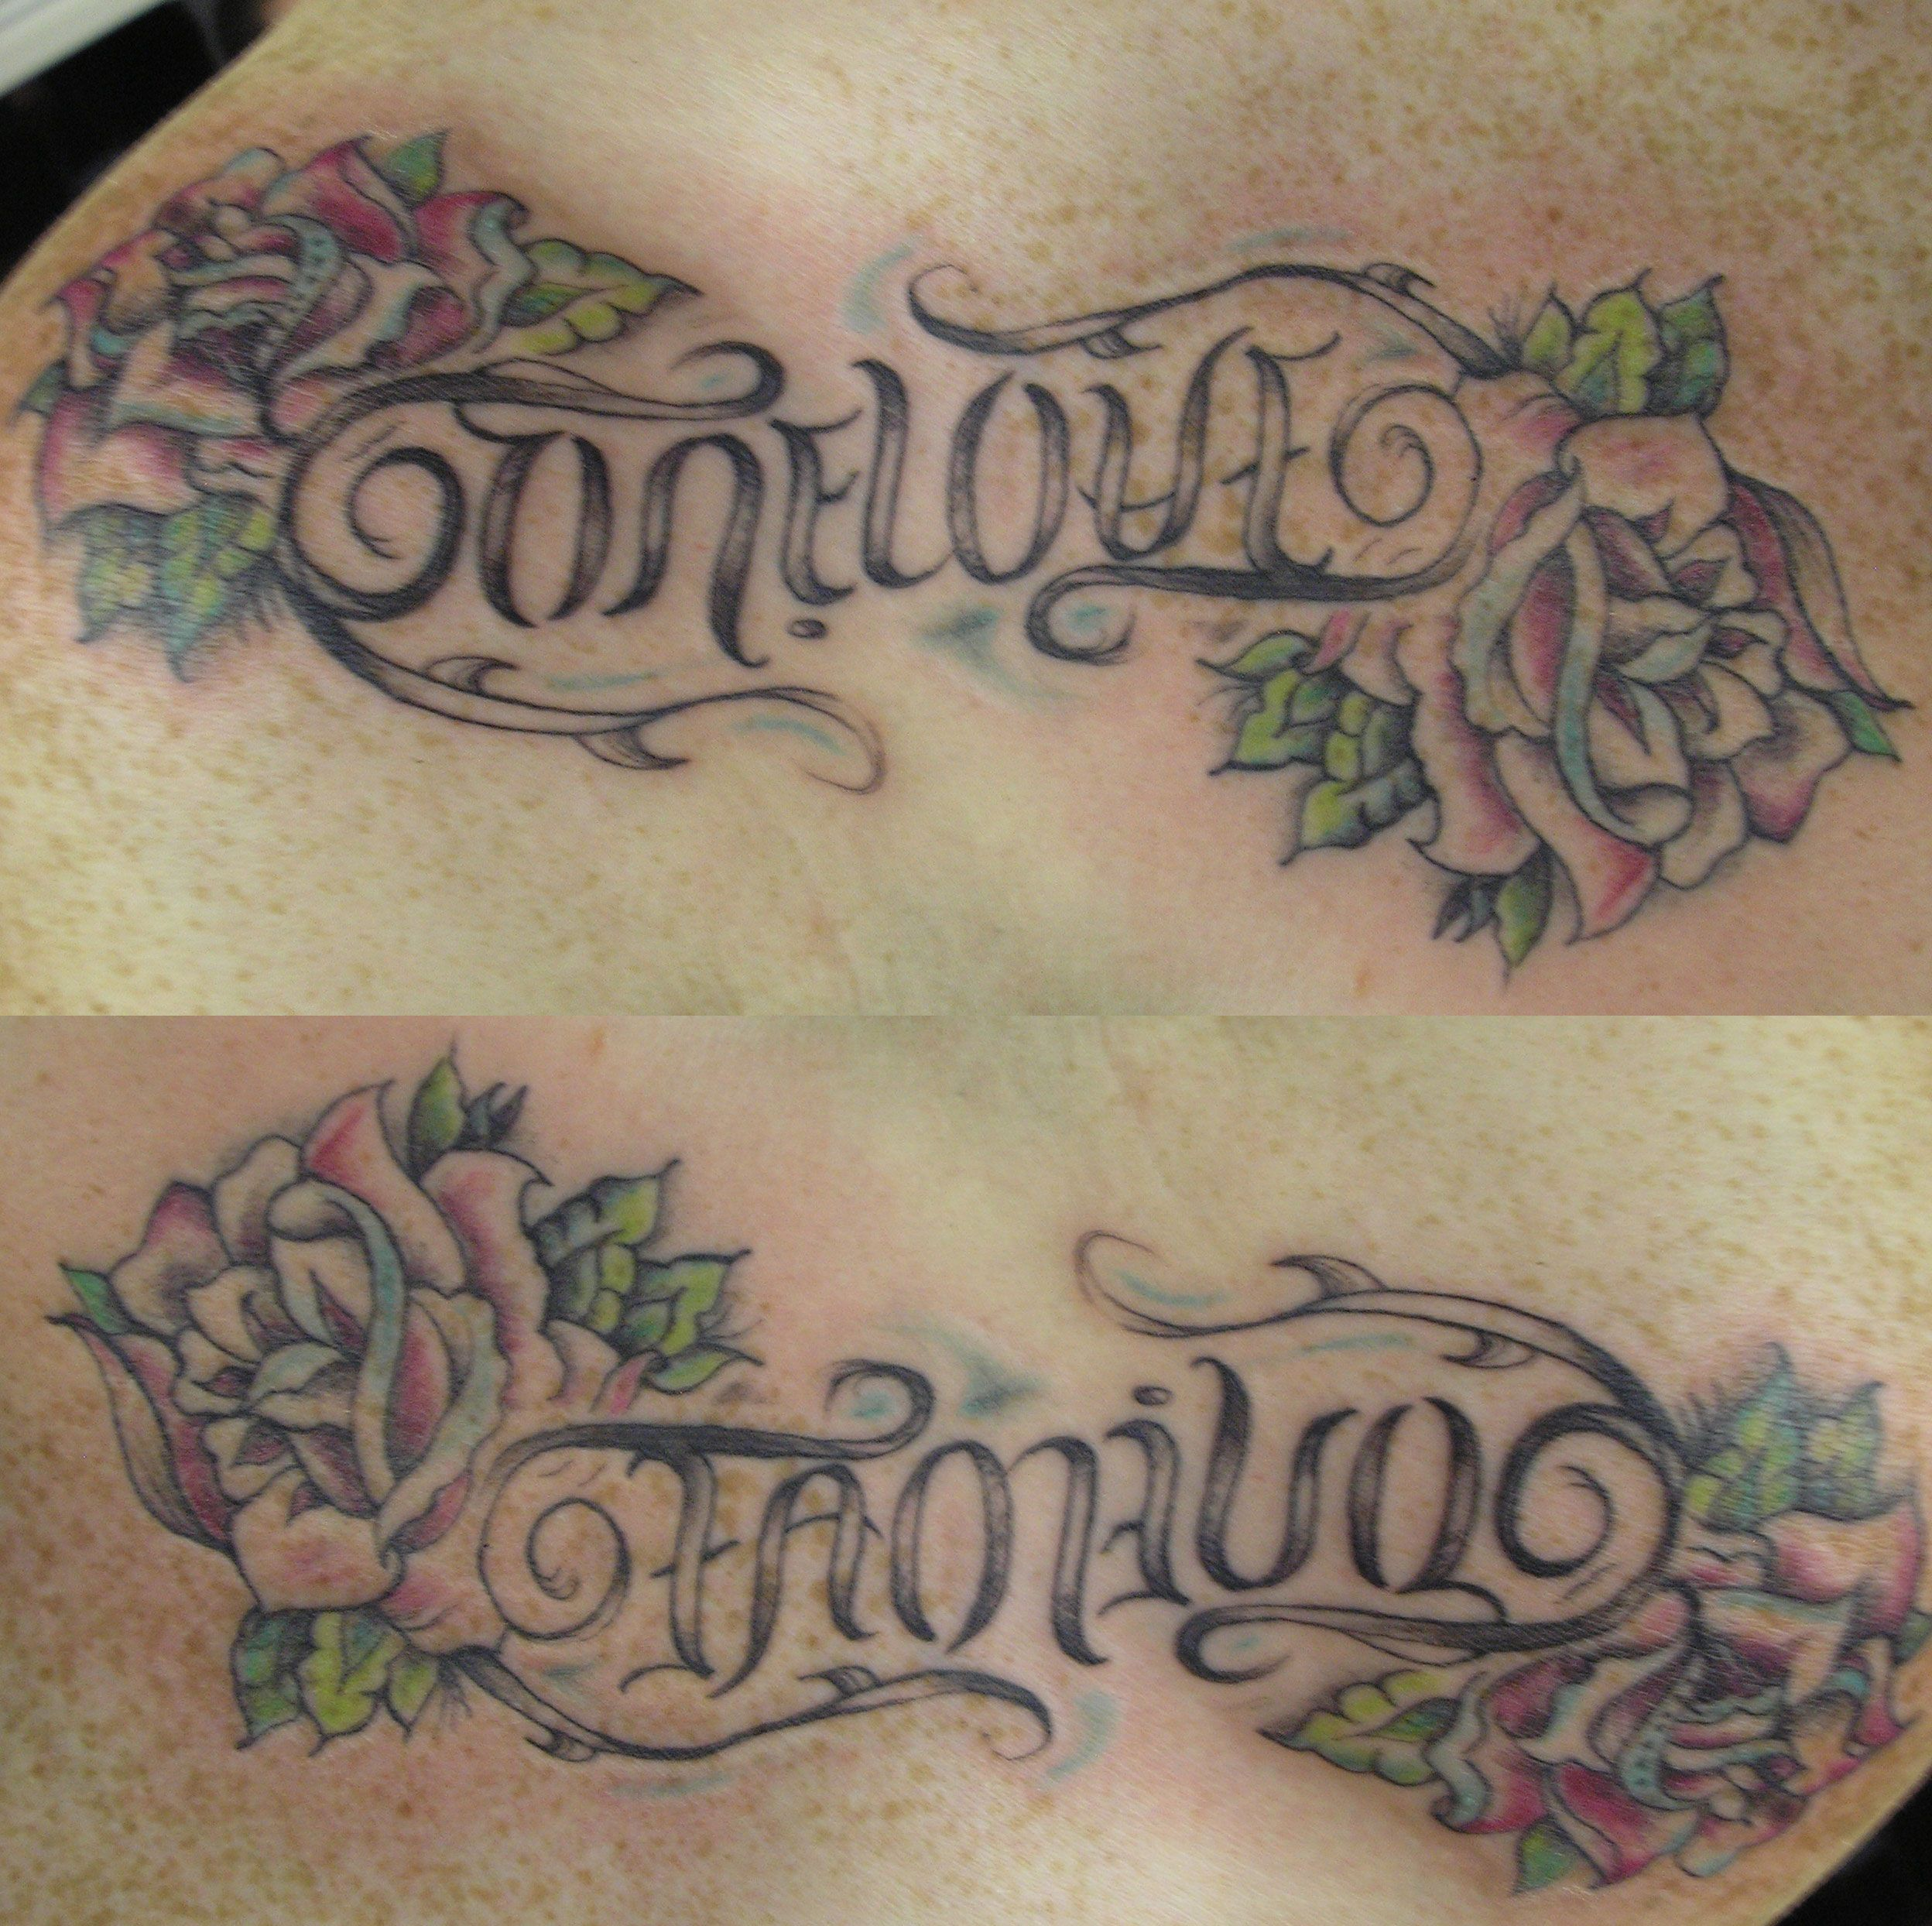 One love family and roses tattoo design tattoobite one love family tattoo ideas is unbreakable creating memories through family tattoo design means that you will keep your family closer buycottarizona Choice Image